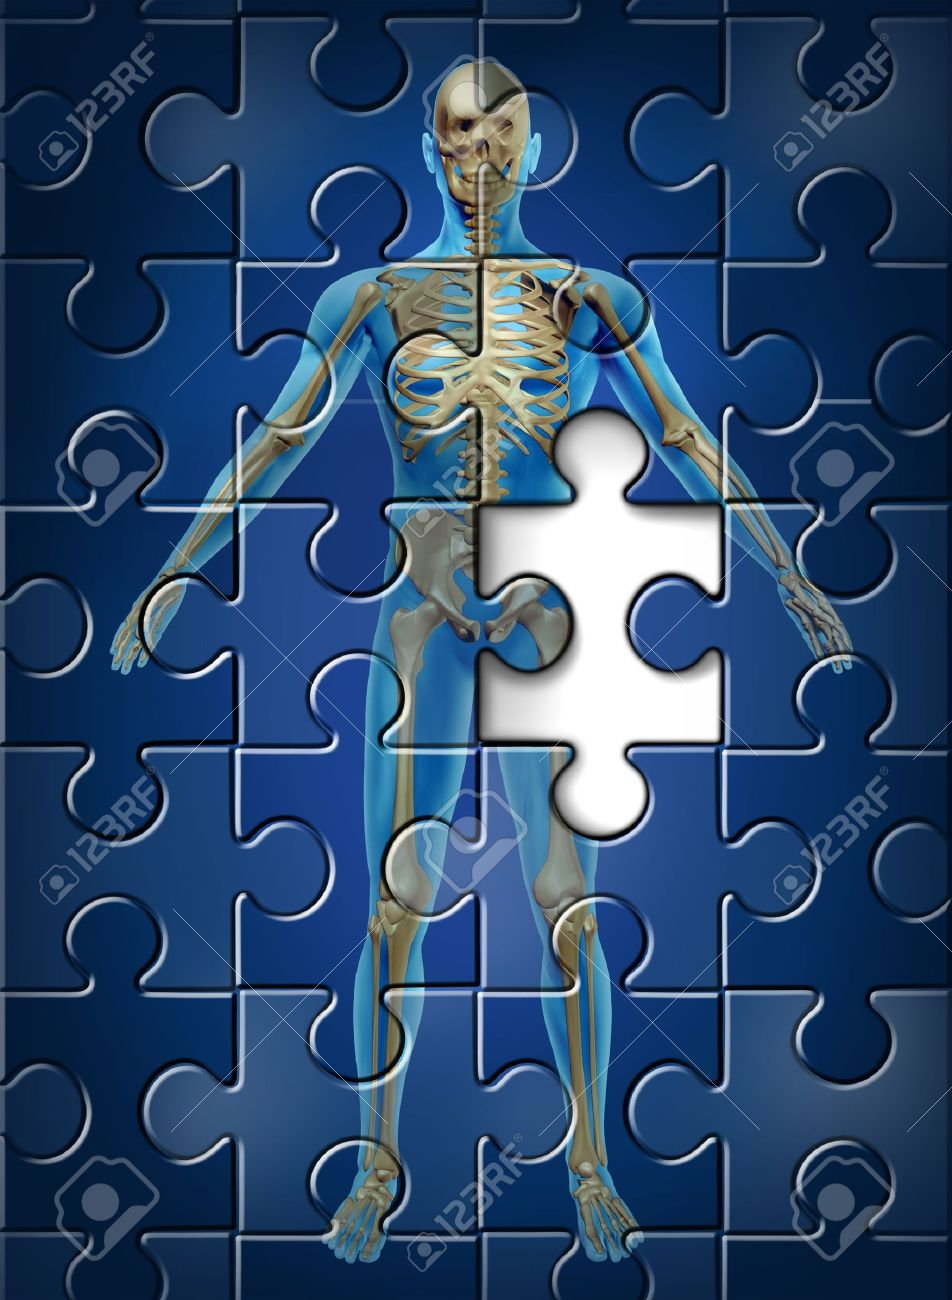 Human skeleton disease and osteoporosis of the hip bone concept with a puzzle texture and a missing piece as a medical and health care symbol of orthopedic and aging deterioration illness Stock Photo - 14118877